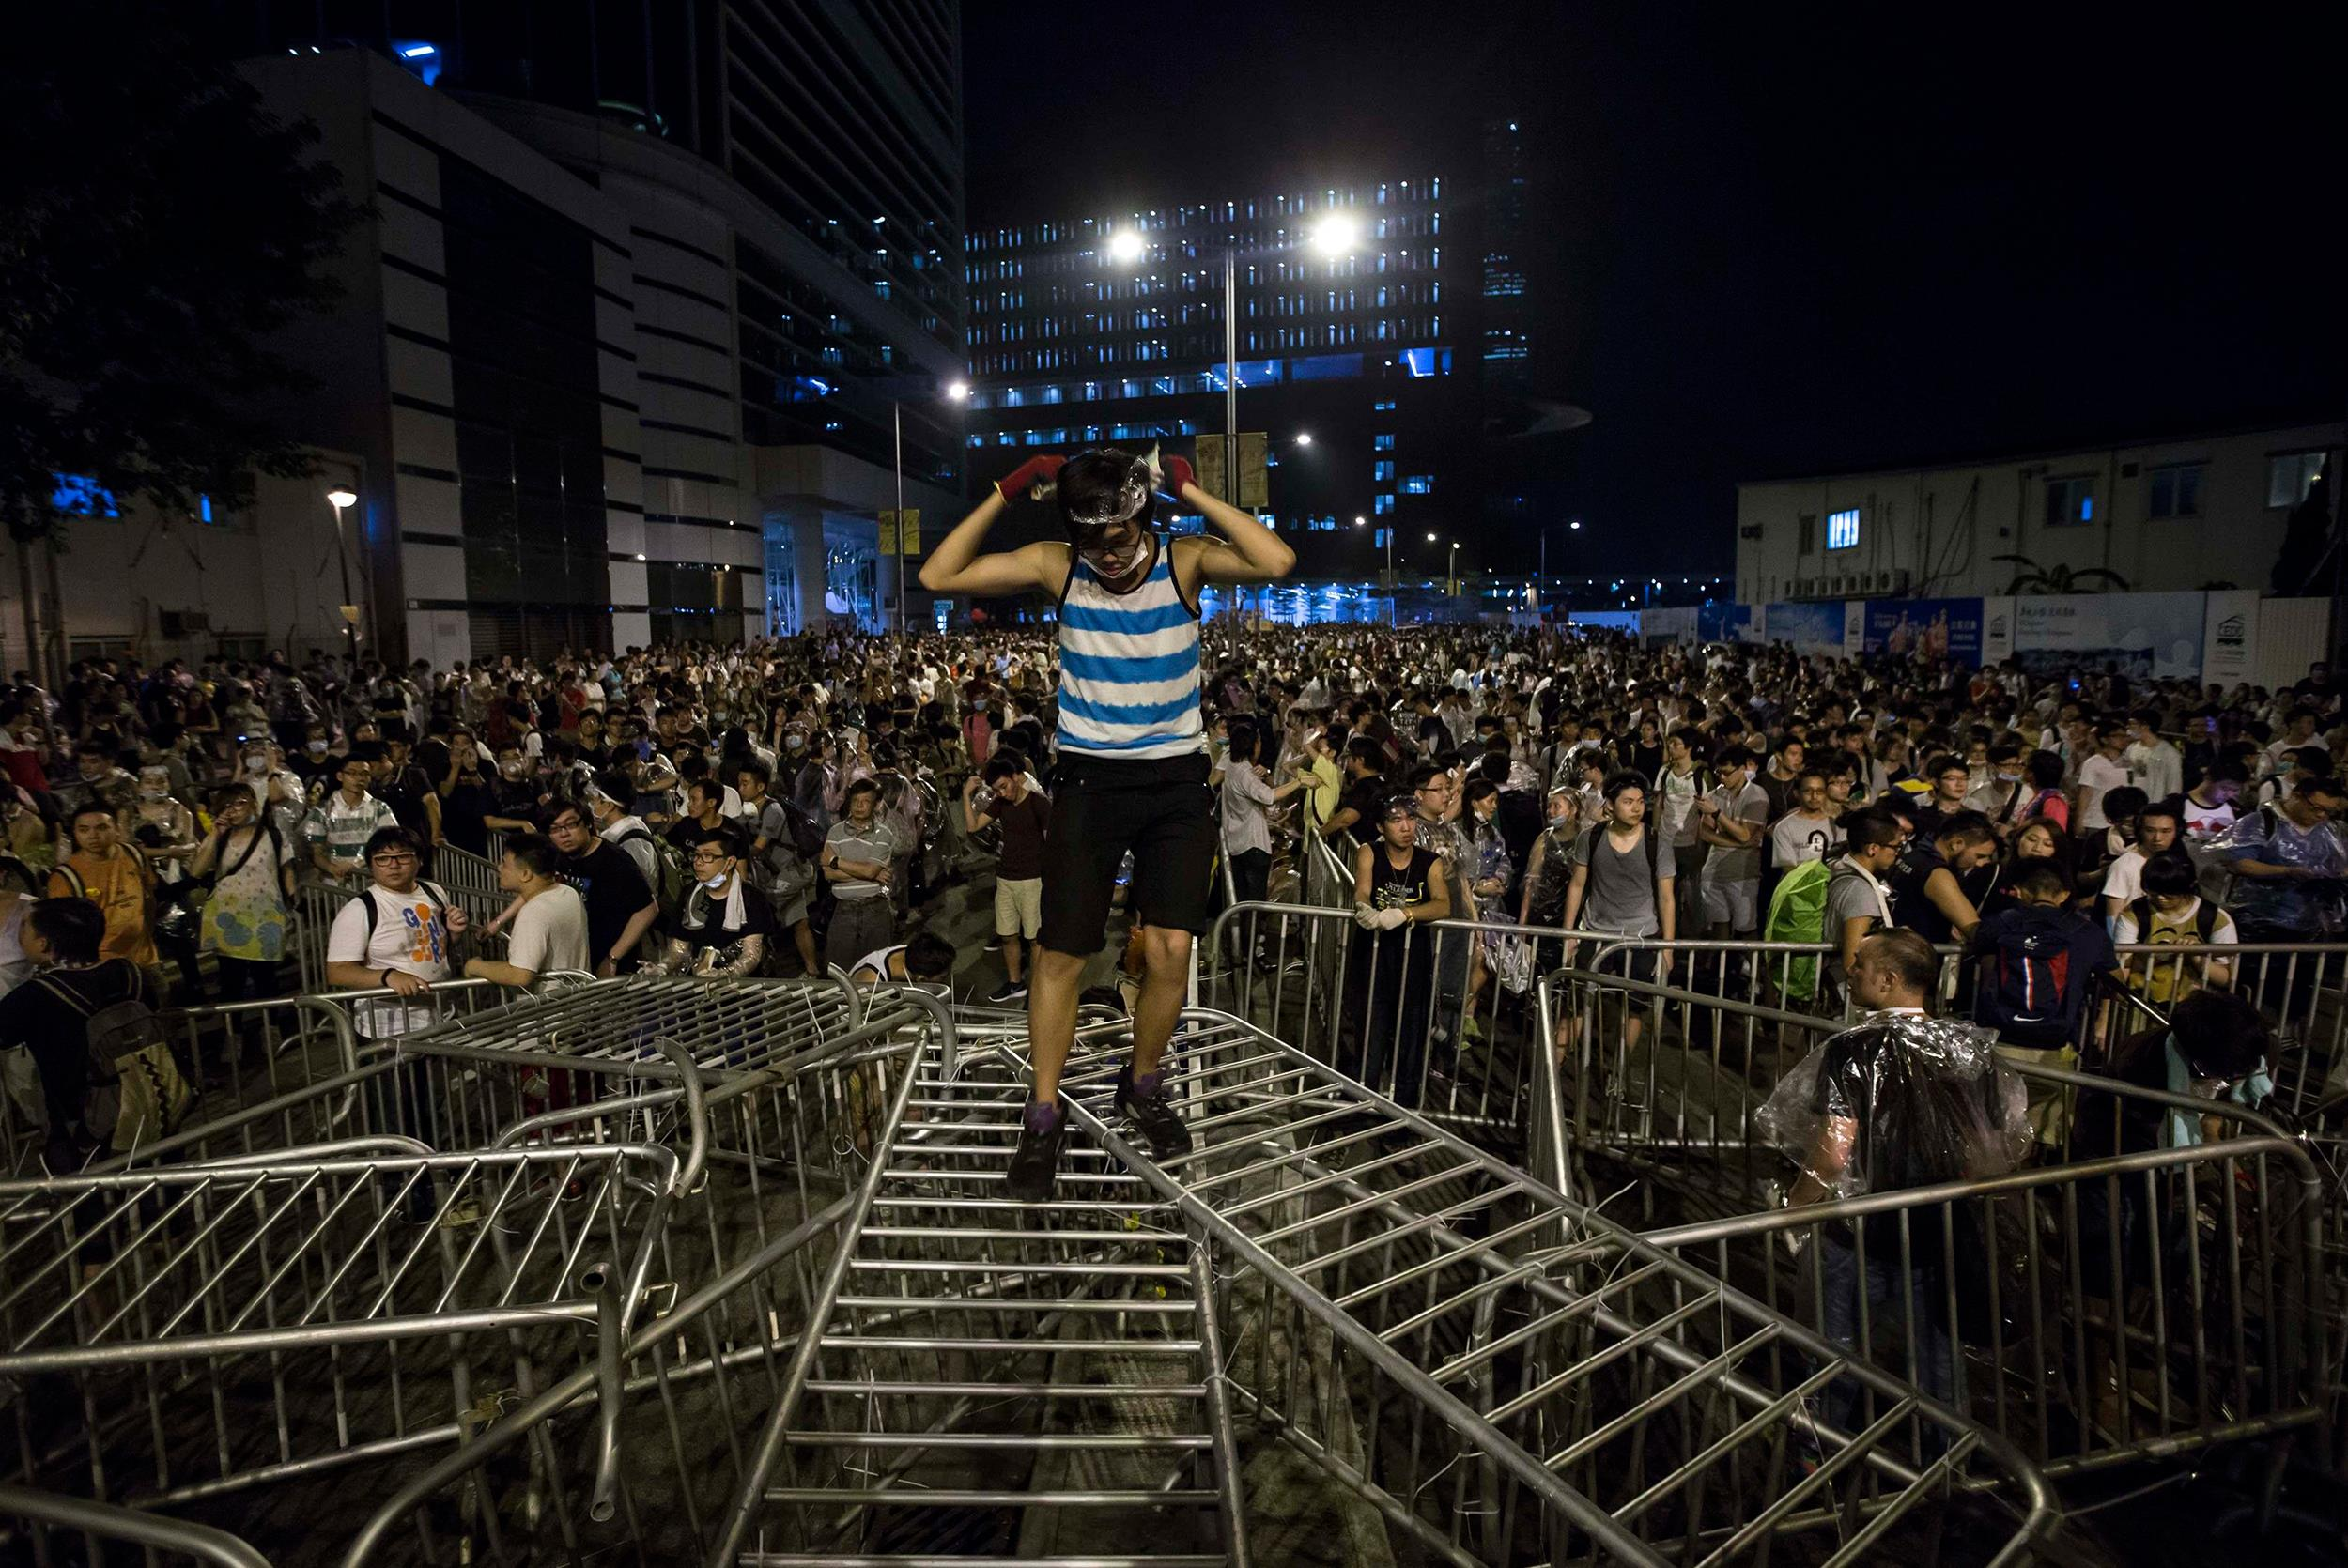 http://media3.s-nbcnews.com/i/newscms/2014_39/688721/140927-hong-kong-protests-jms-1811_f7bd2590644845cf636780ccdcb7e02a.jpg